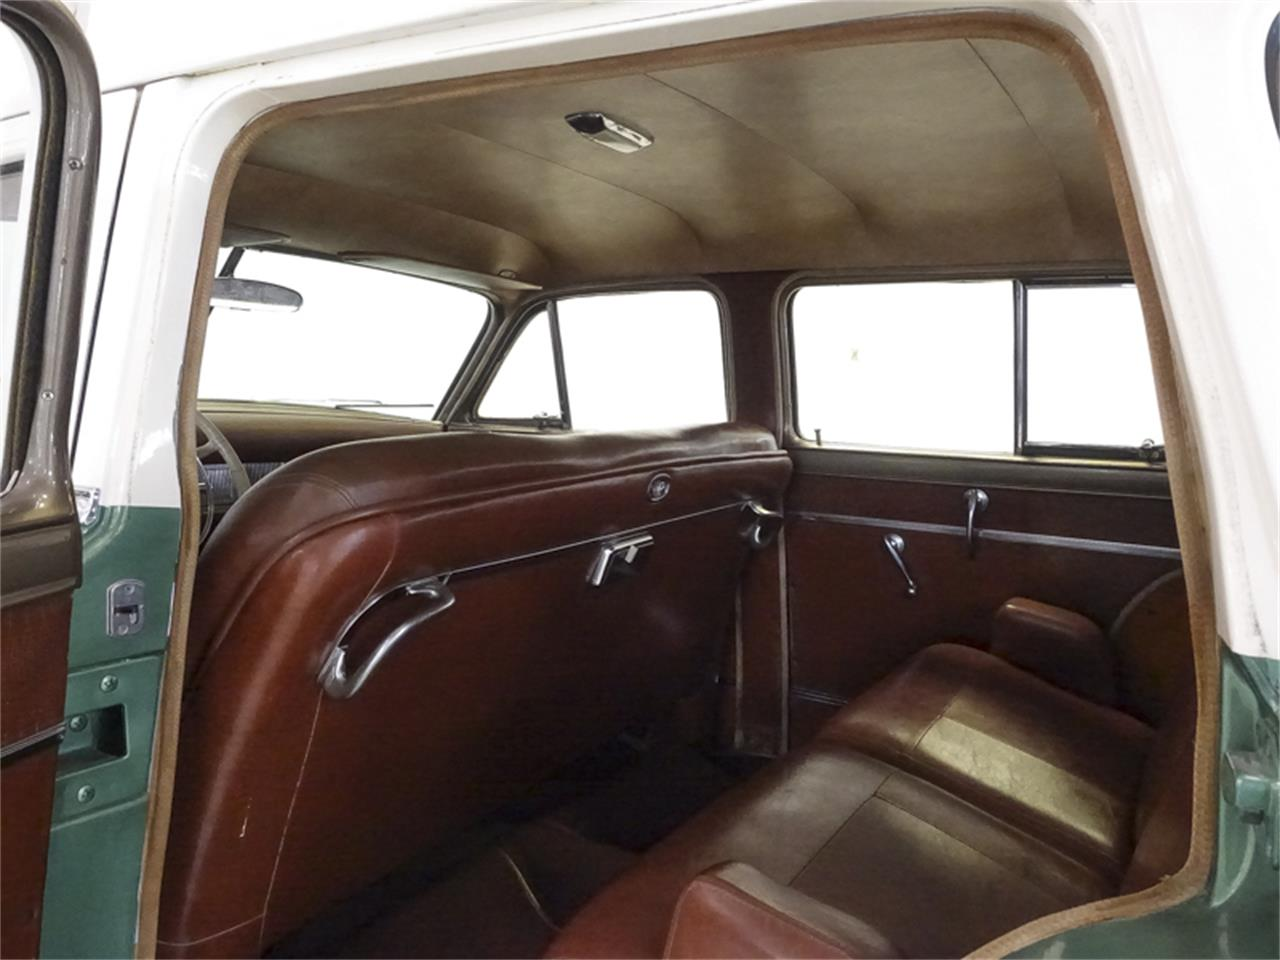 1952 Chrysler Saratoga for sale in St. Louis, MO – photo 27